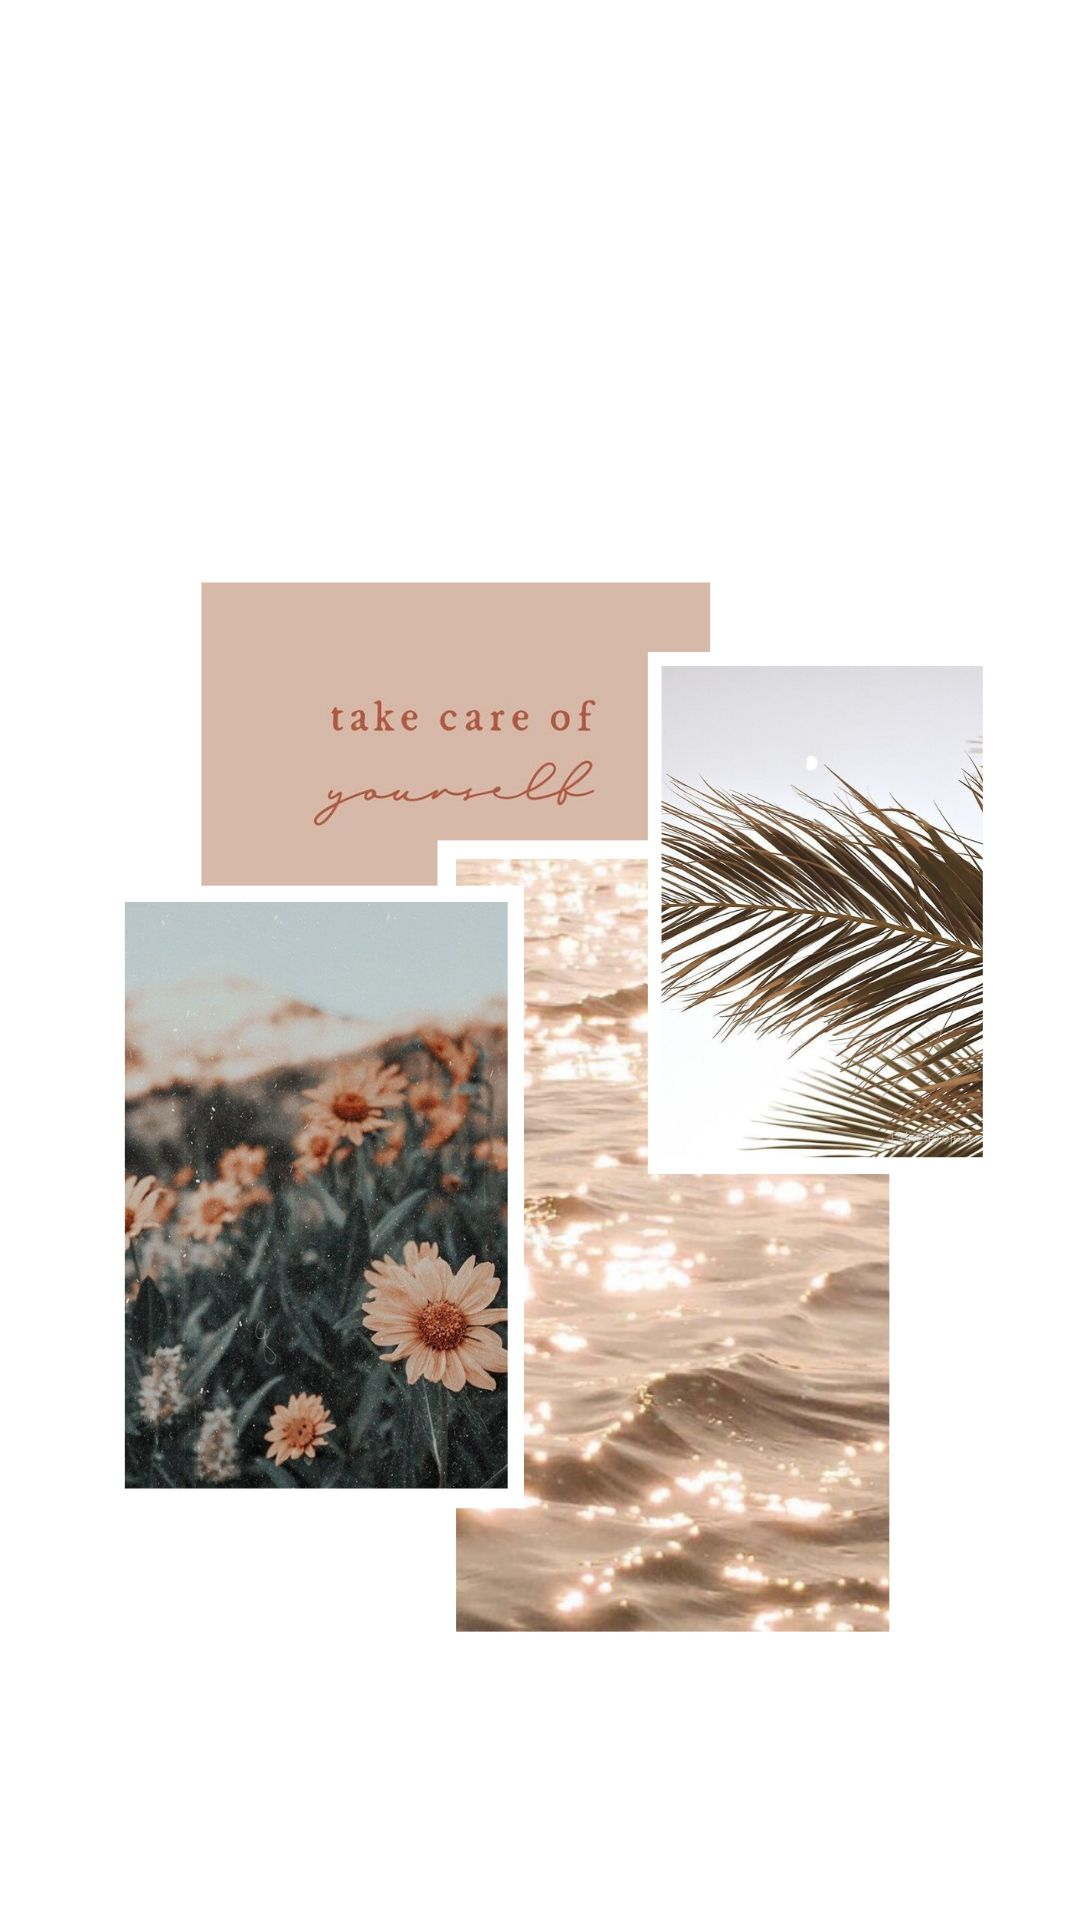 Aesthetic Minimalistic Collage Wallpaper In 2020 Iphone Wallpaper Tumblr Aesthetic Pastel Iphone Wallpaper Flower Iphone Wallpaper